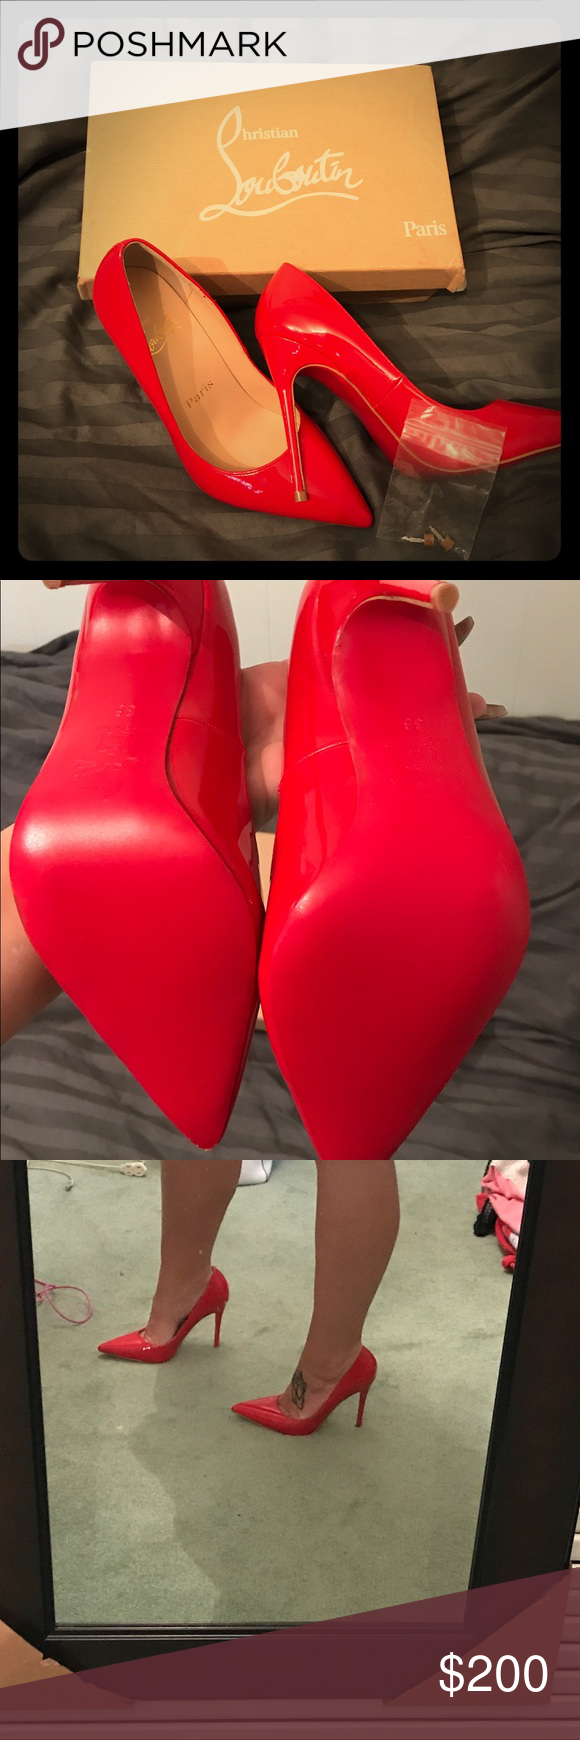 NOT AUTHENTIC Christian Louboutins : Red Bottoms These ARE NOT AUTHENTIC. They are still beautiful, well made high heels!!! Never worn. I wear a size 6 and these are a little too big for me sadly. Christian Louboutin Shoes Heels